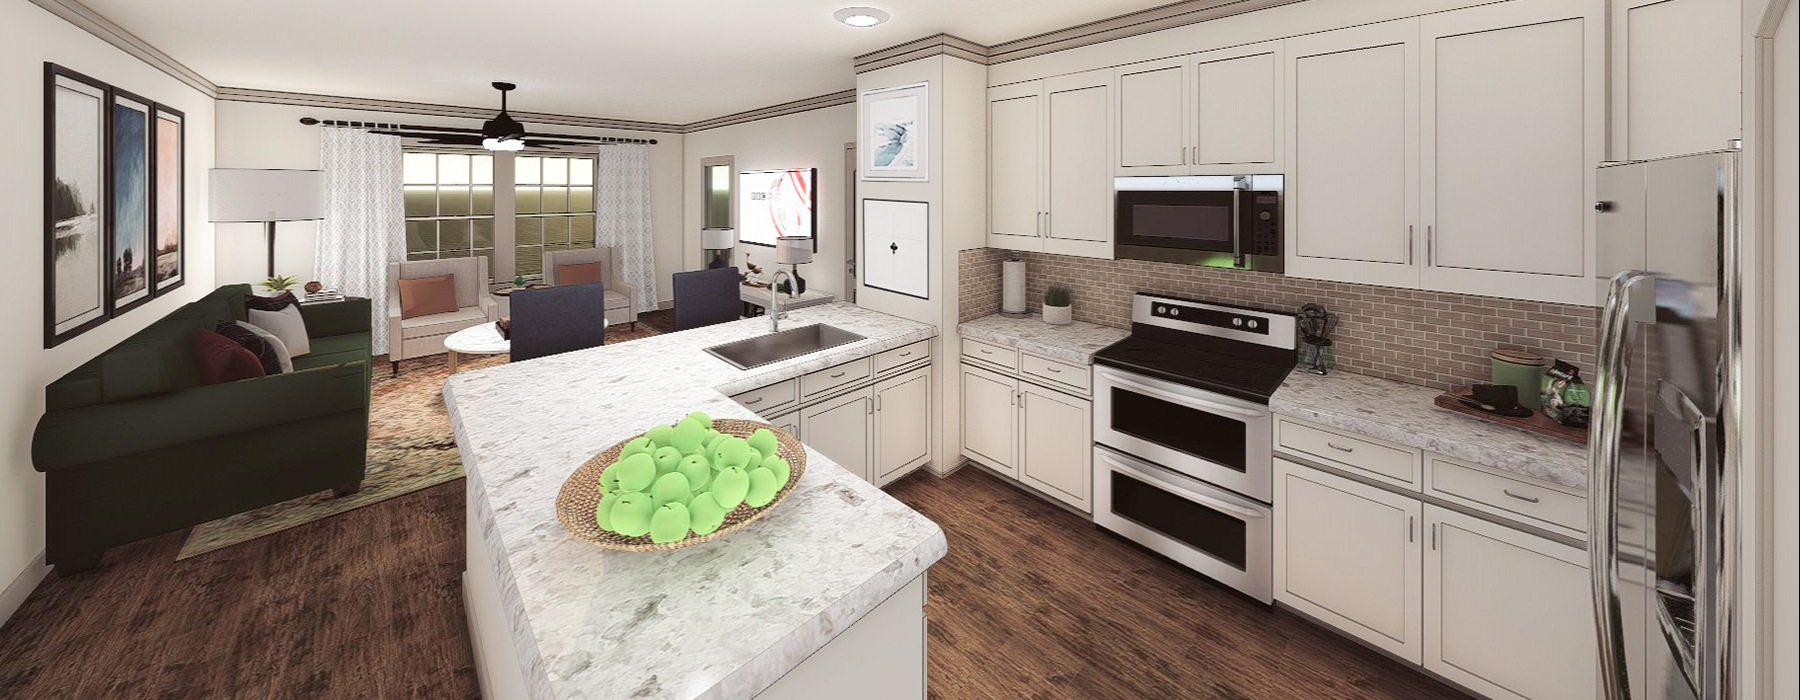 U-Shaped kitchen with plenty of counterspace